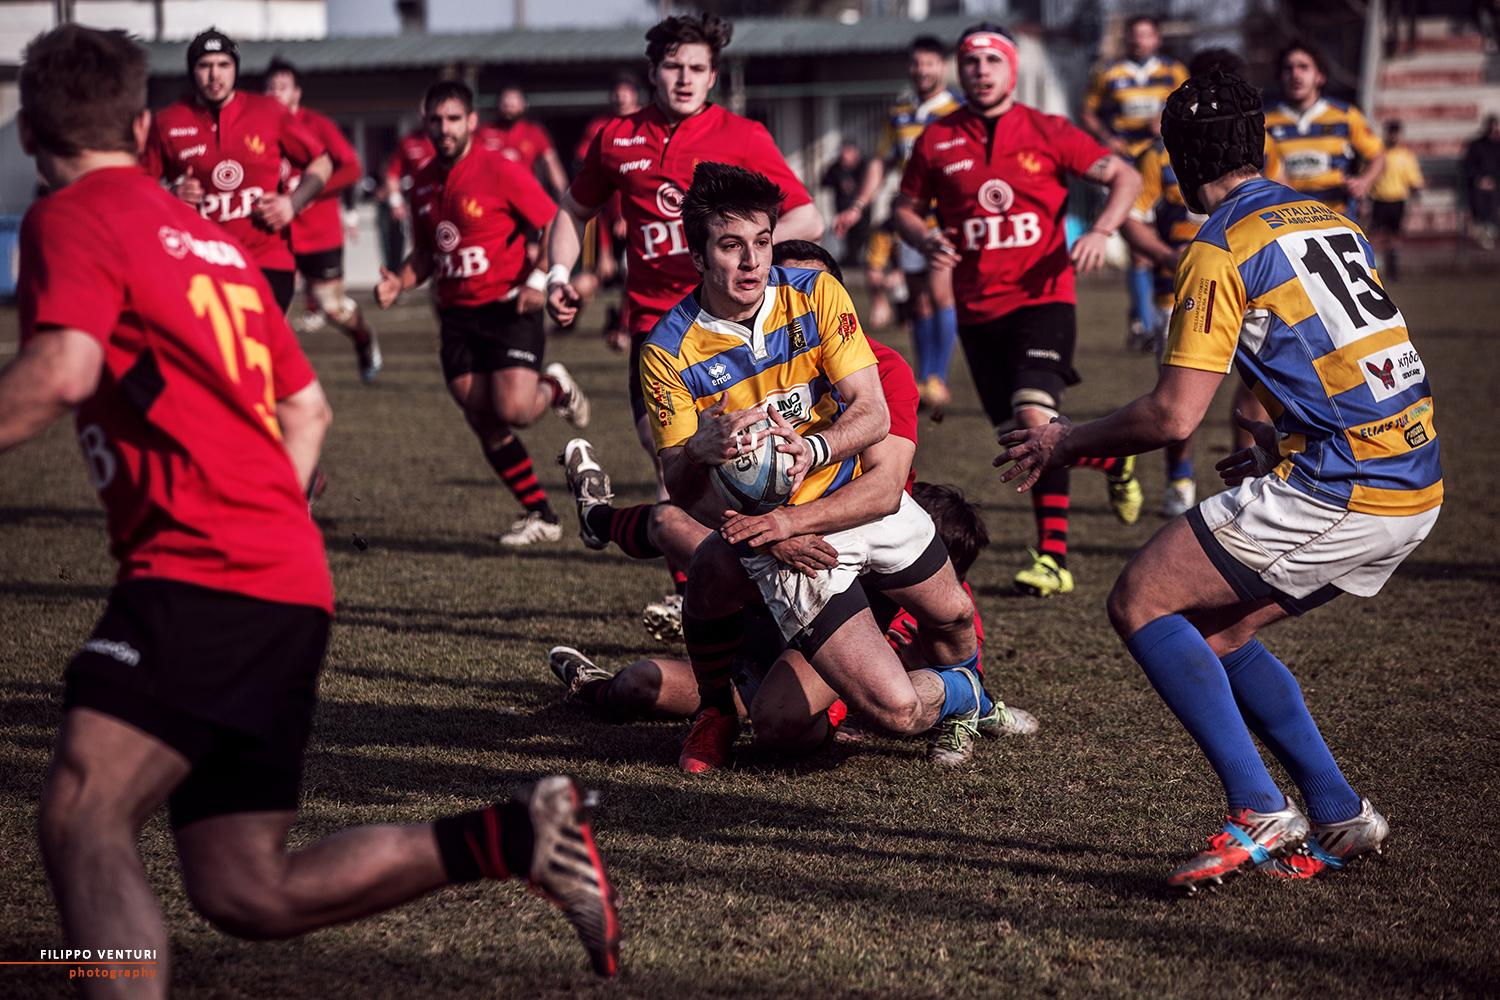 romagna_rugby_parma_09.jpg